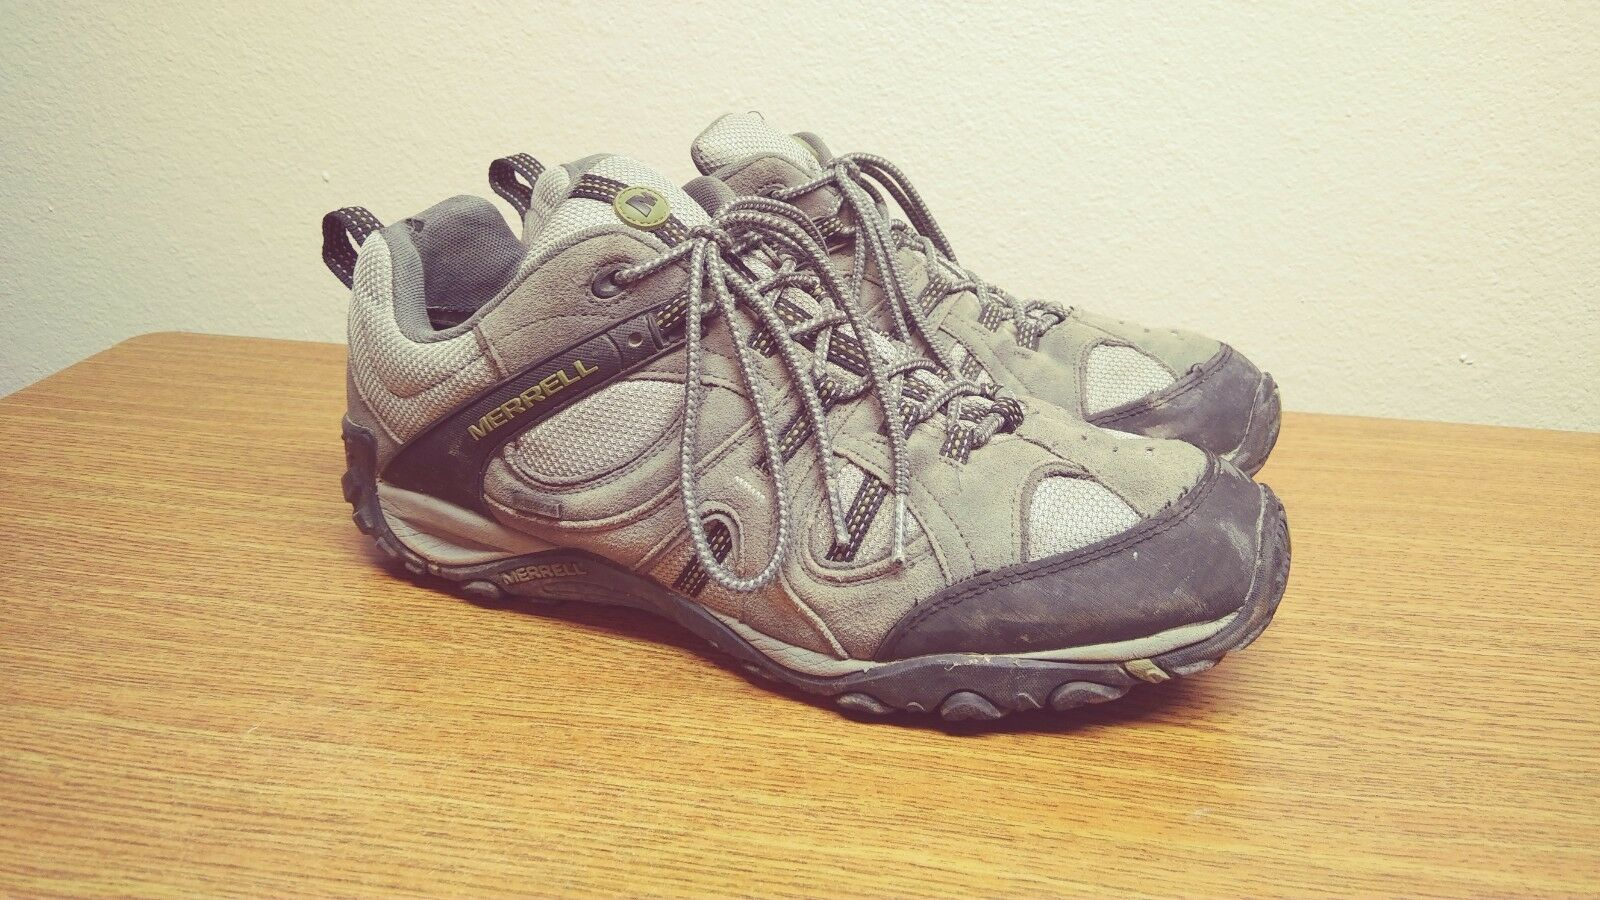 Mens 13 Merrell Gray Hiking Trail Athletic Running Shoes